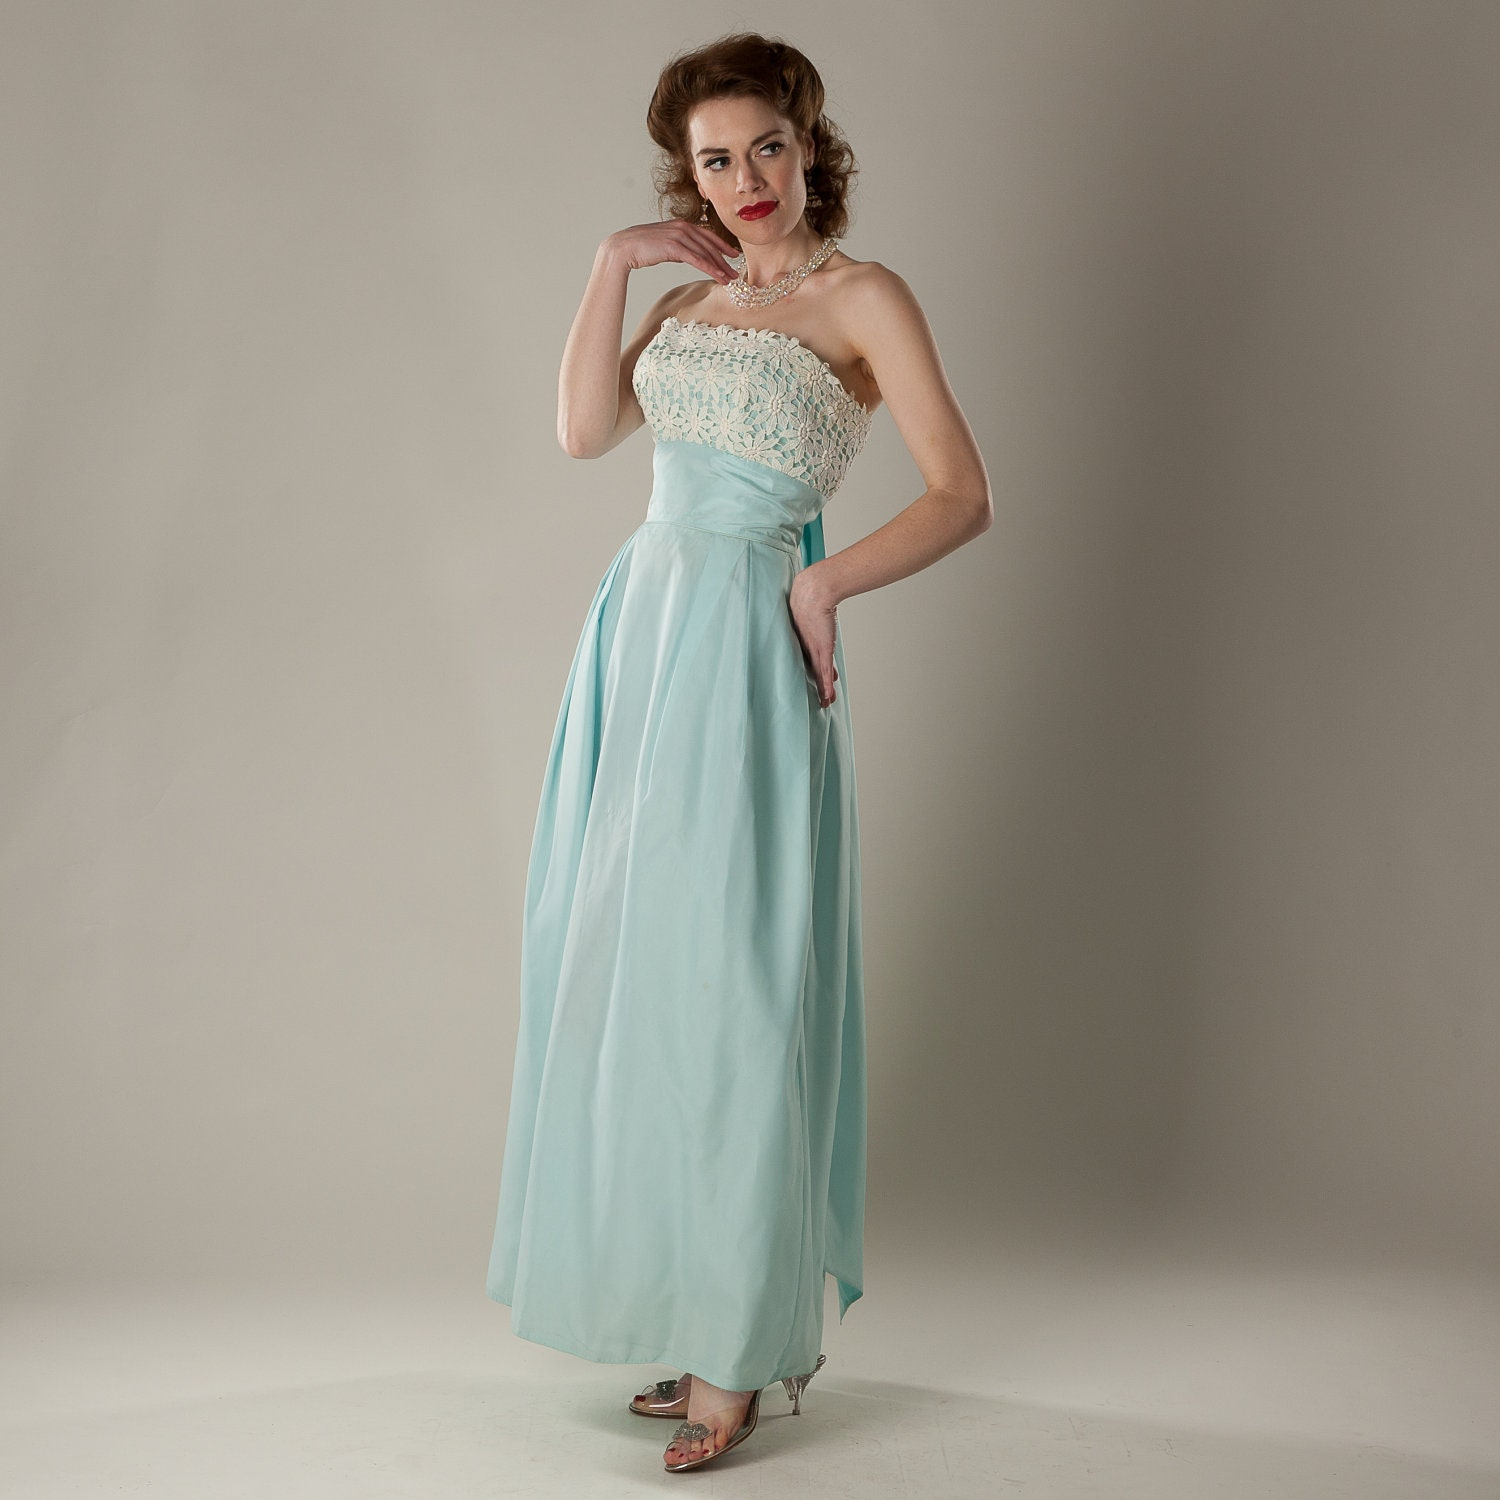 Vintage 1960s Strapless Prom Dress Blue Empire Waist Lace